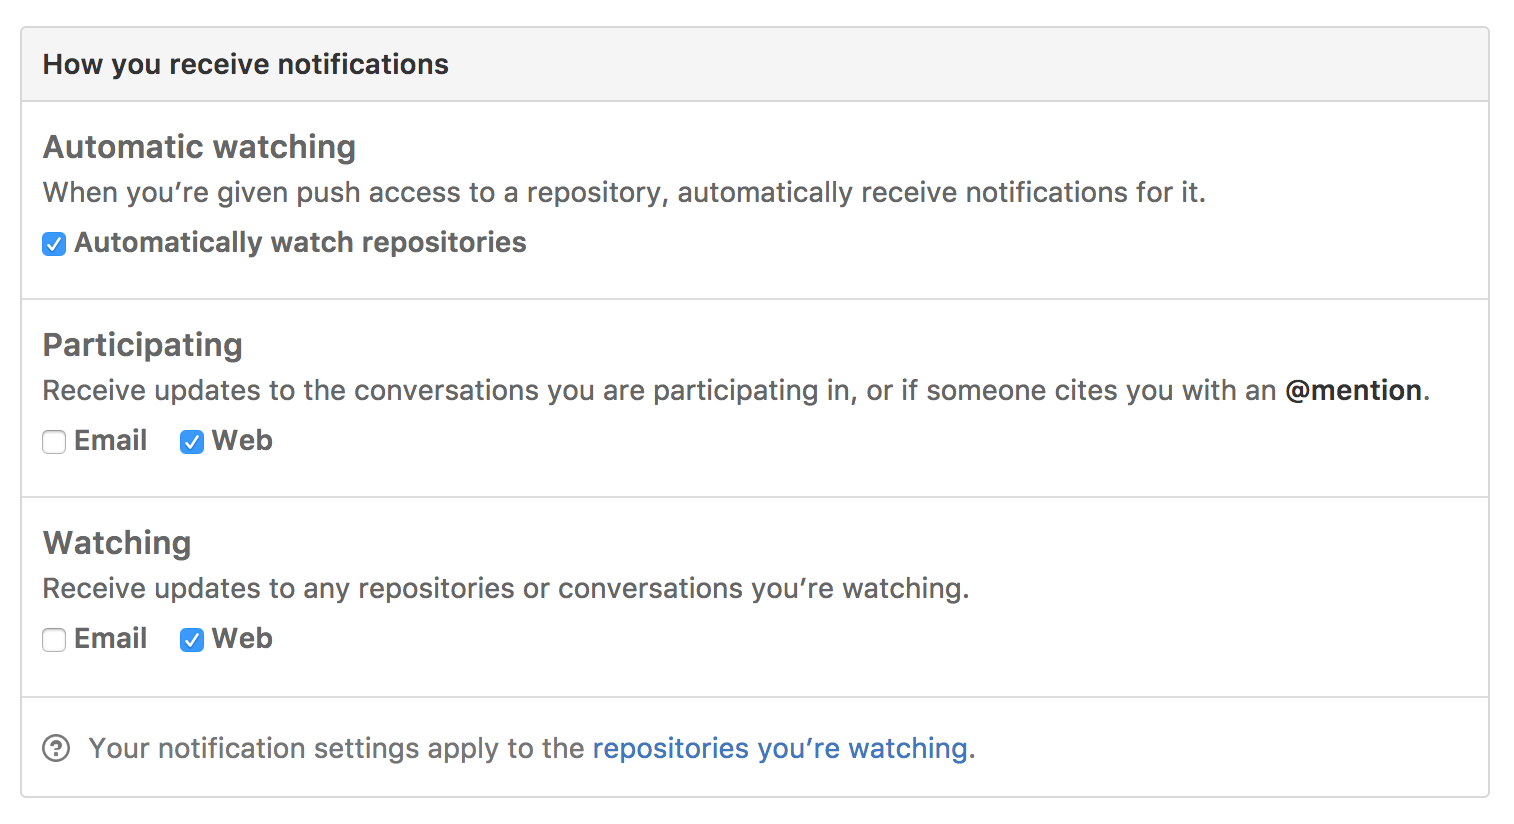 Notifications settings screen